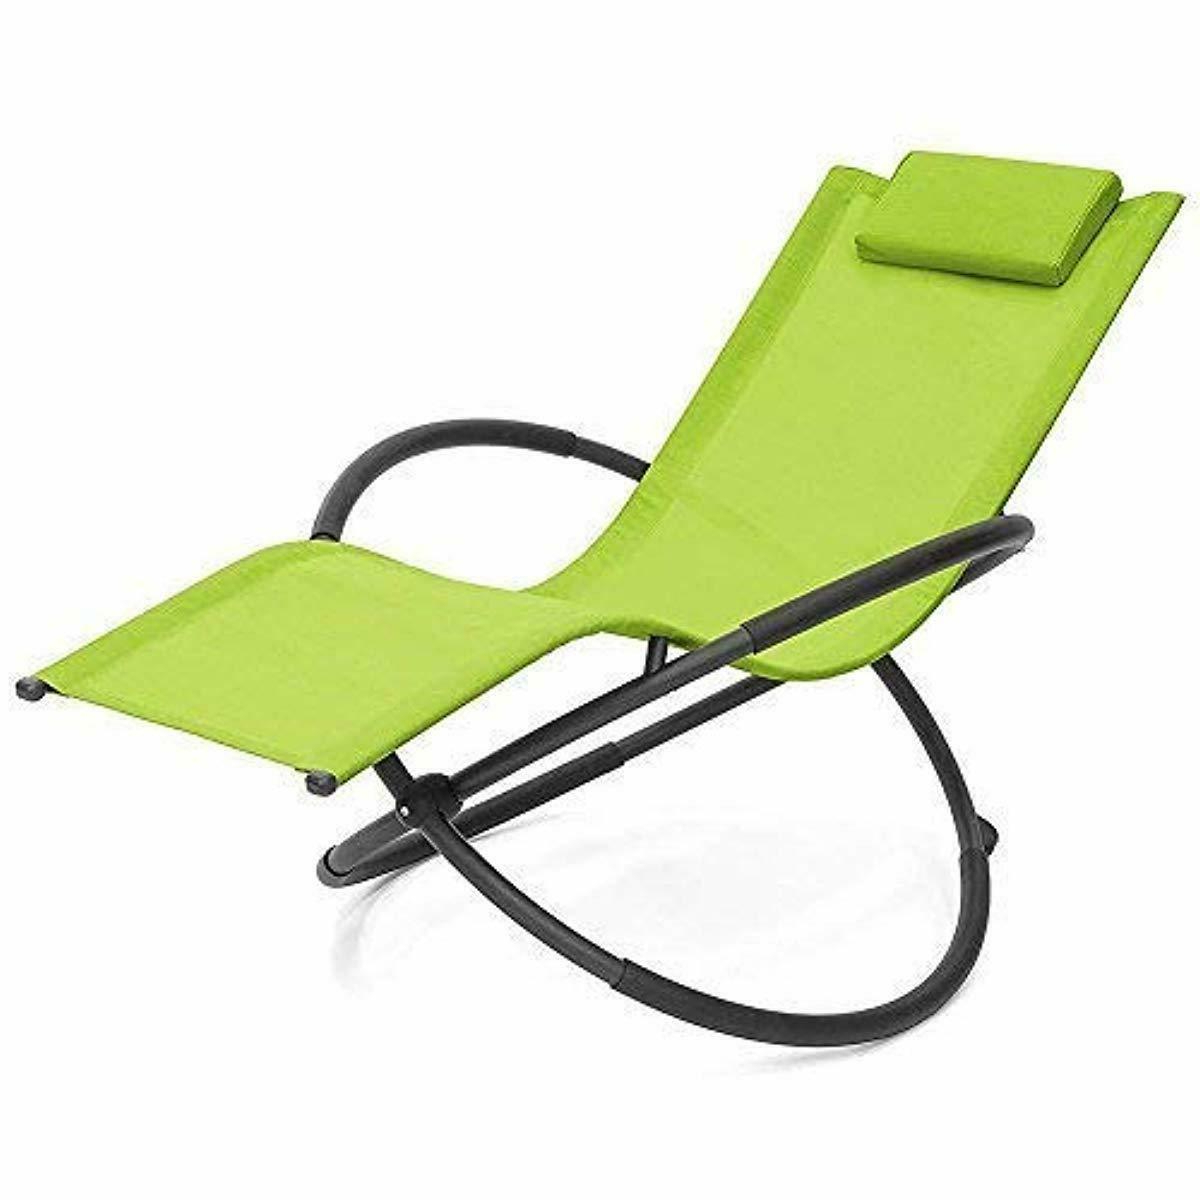 2019 Details About Grearden Outdoor Lounge Chair Orbital Zero Gravity Patio Chaise Lounge Rocking L Intended For Orbital Patio Lounger Rocking Chairs (View 5 of 25)